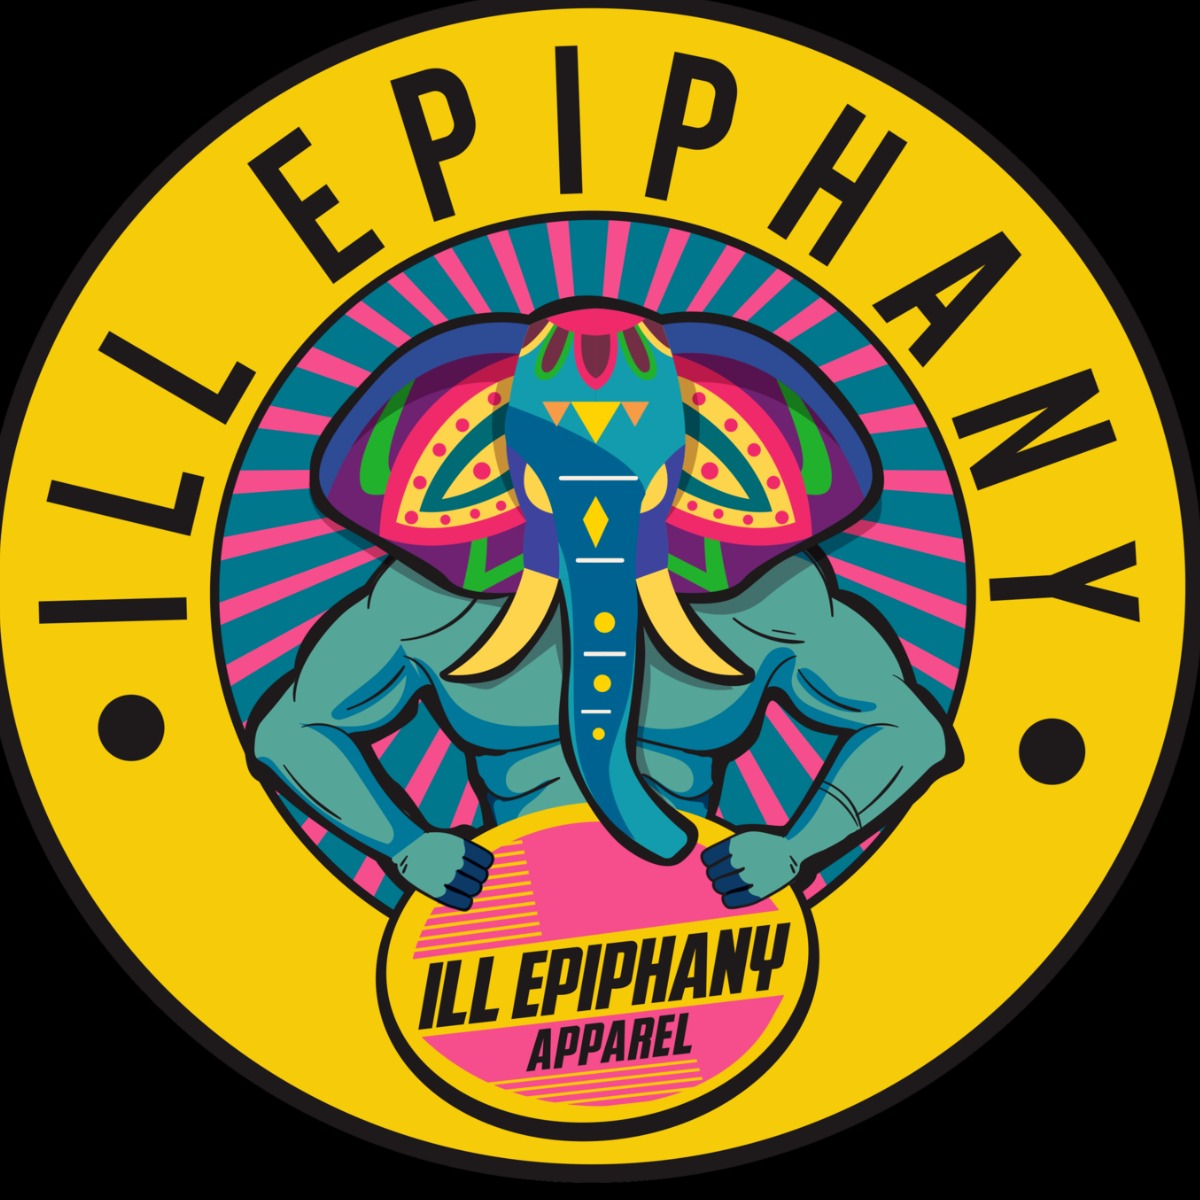 ill epiphany apparel  Profile Picture